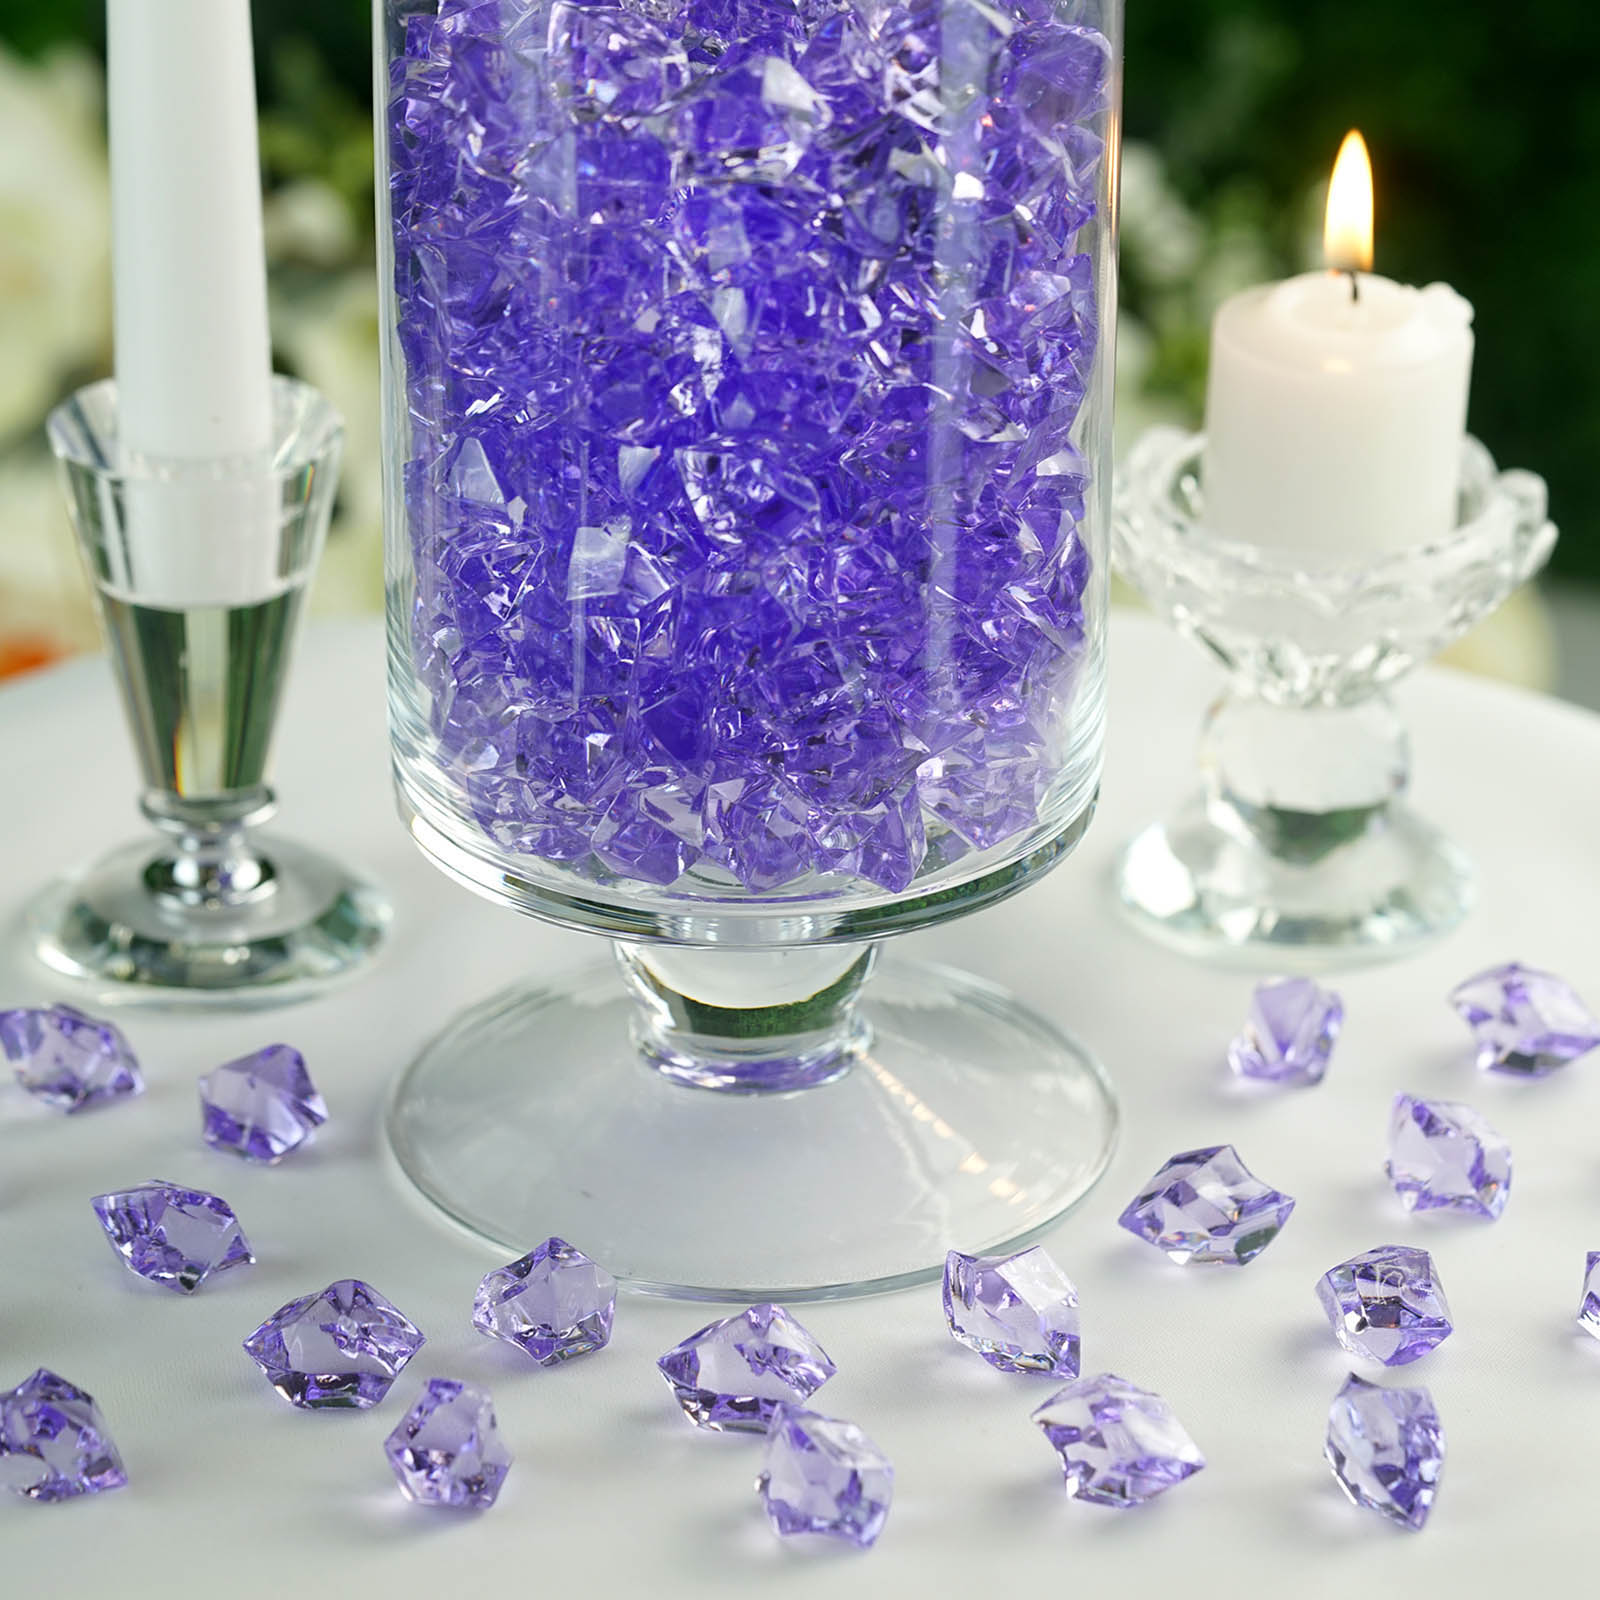 300-Acrylic-Ice-CRYSTAL-LIKE-Pieces-Wedding-Centerpieces-Decorations-Supplies thumbnail 39